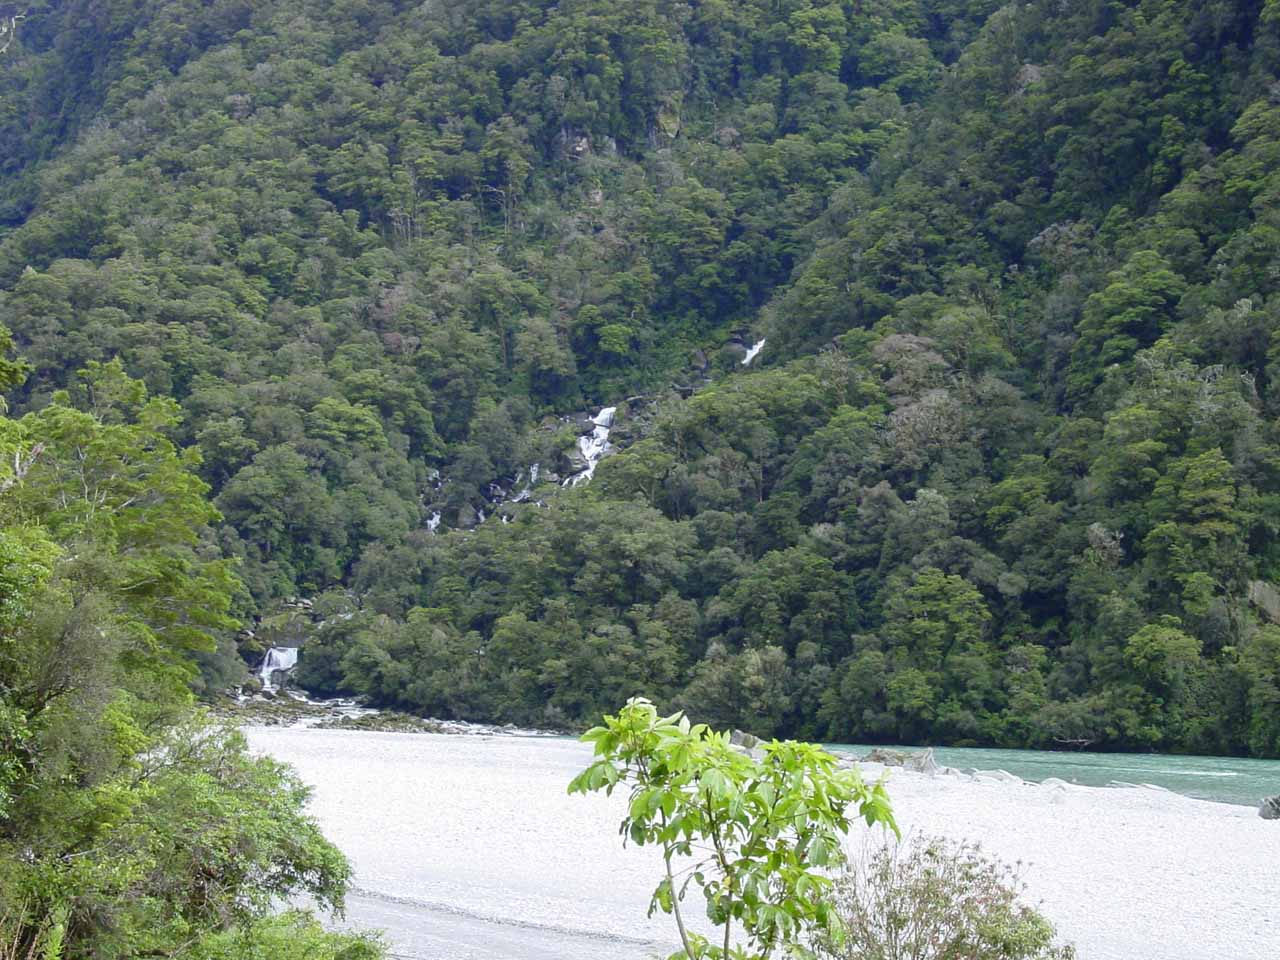 After passing through the bush, we got this angled view of Roaring Billy Falls feeding the Haast River